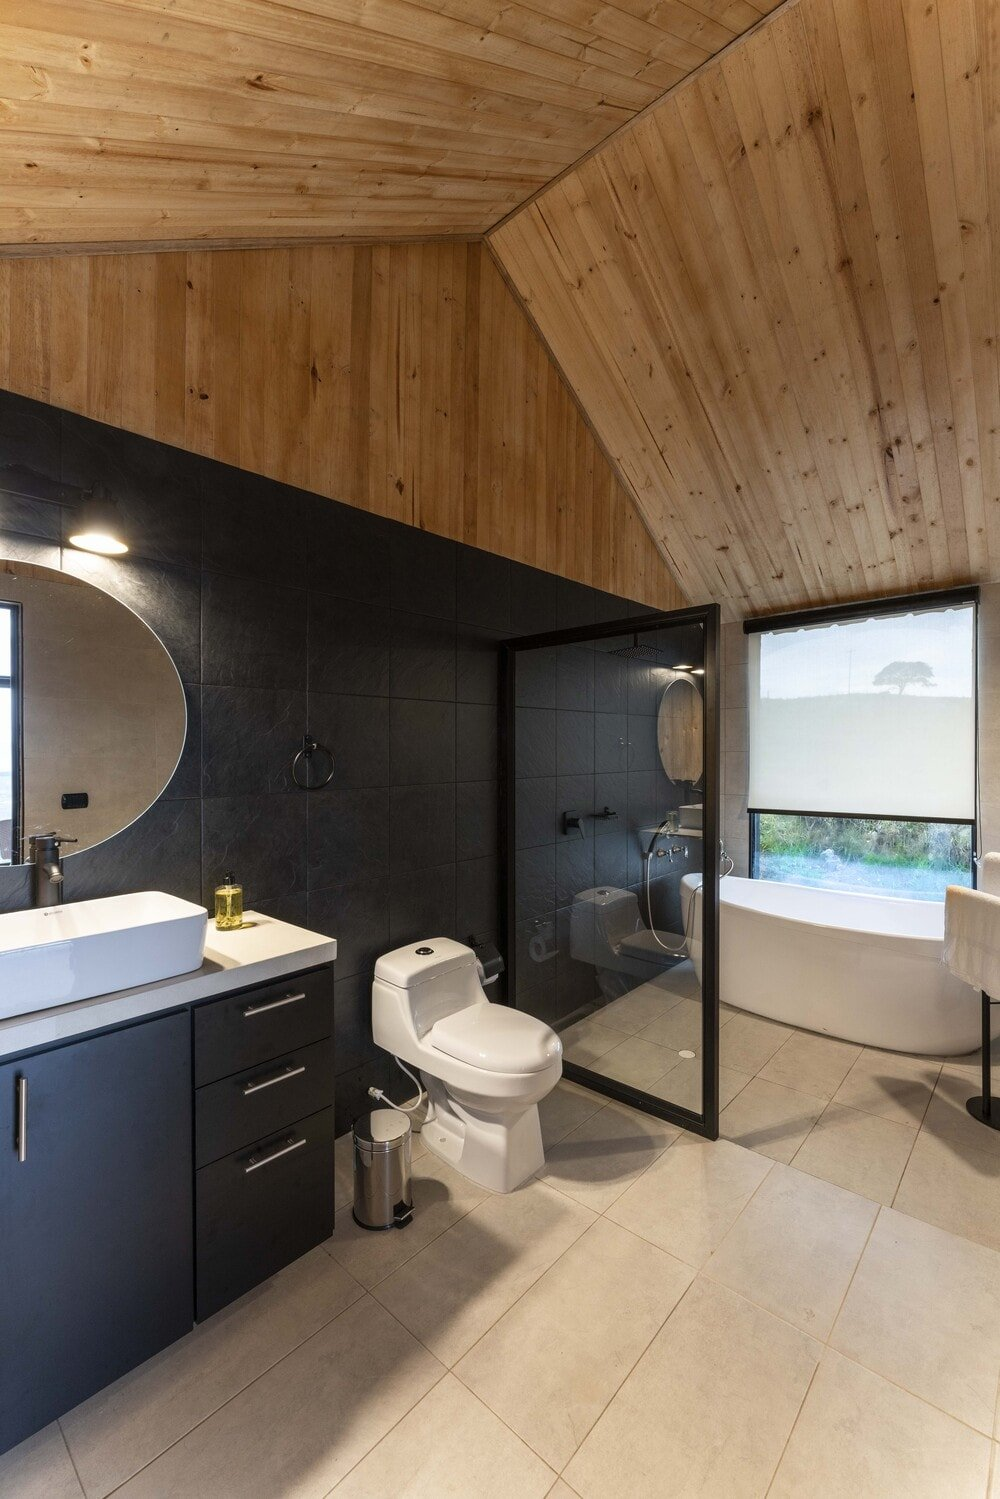 This is the bathroom with a dark wall that blends well with the cabinetry of the vanity across from the freestanding bathtub by the window.